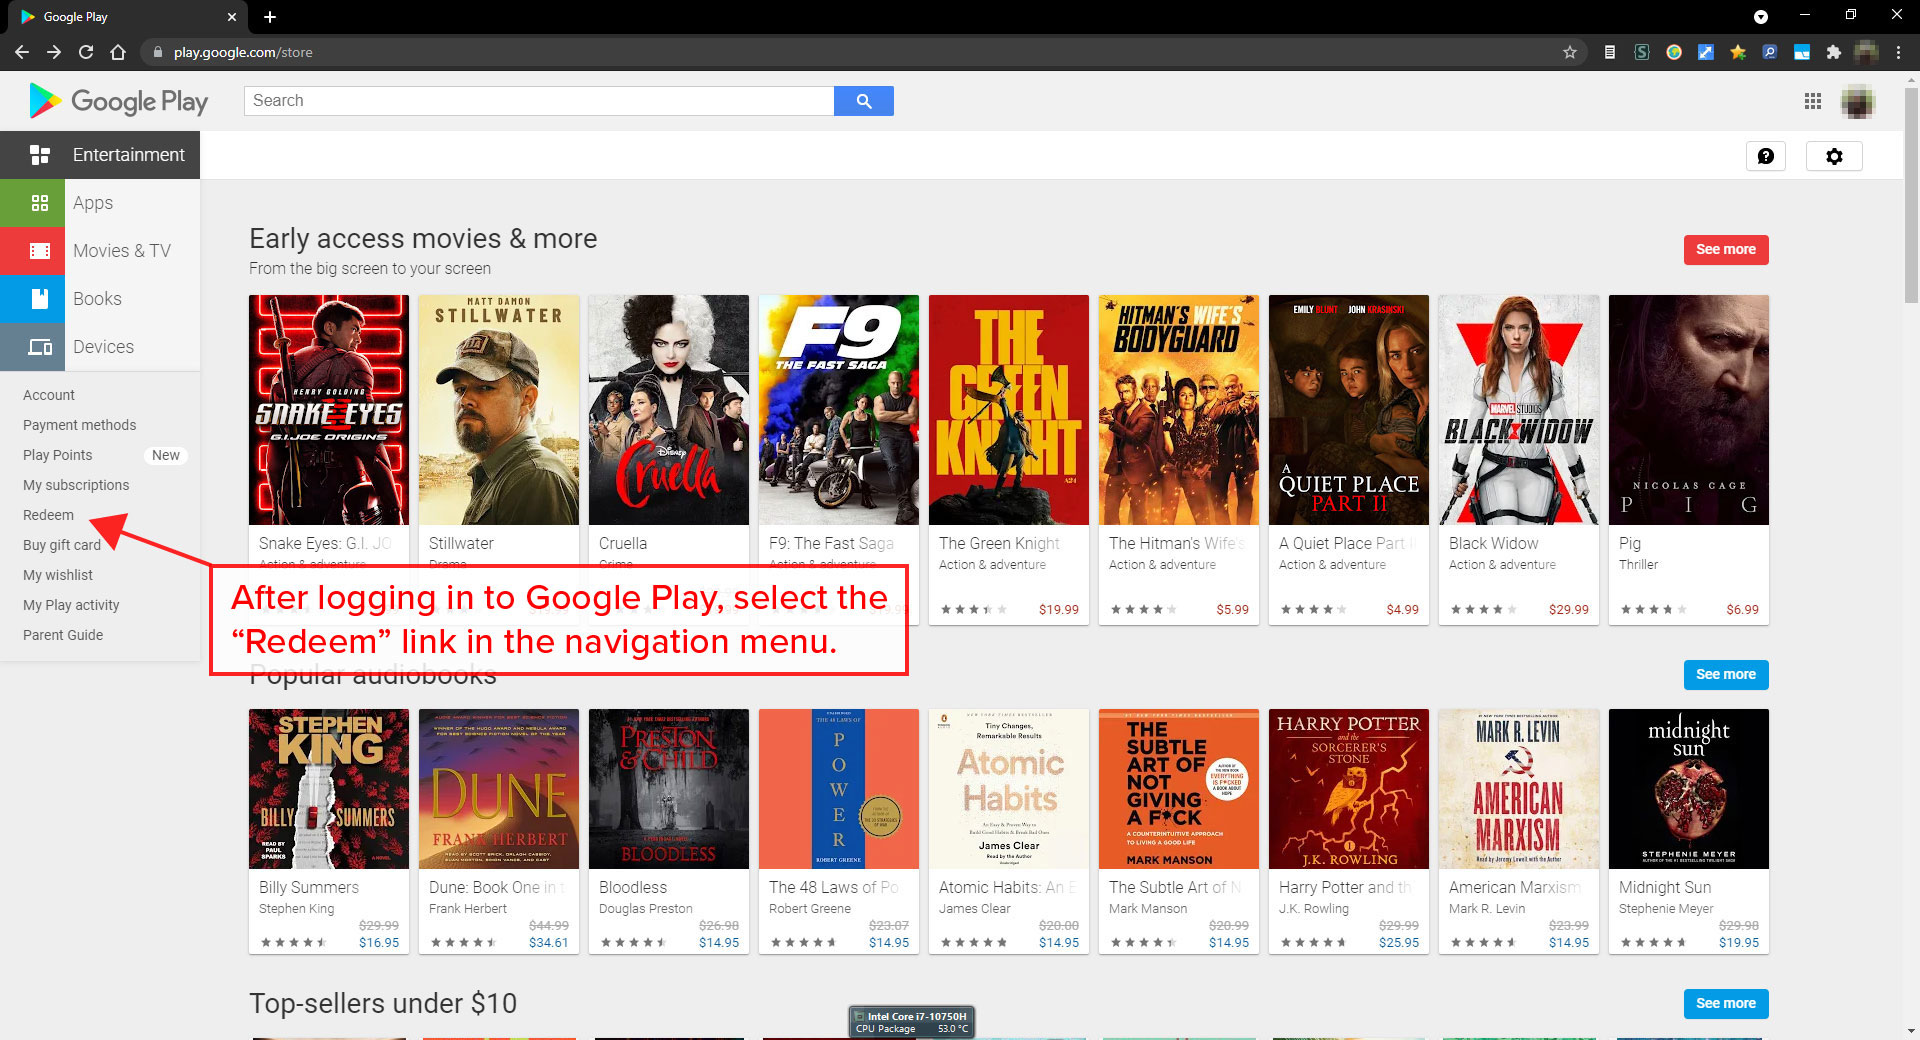 After logging in to Google Play, select the 'Redeem' option in the navigation menu.